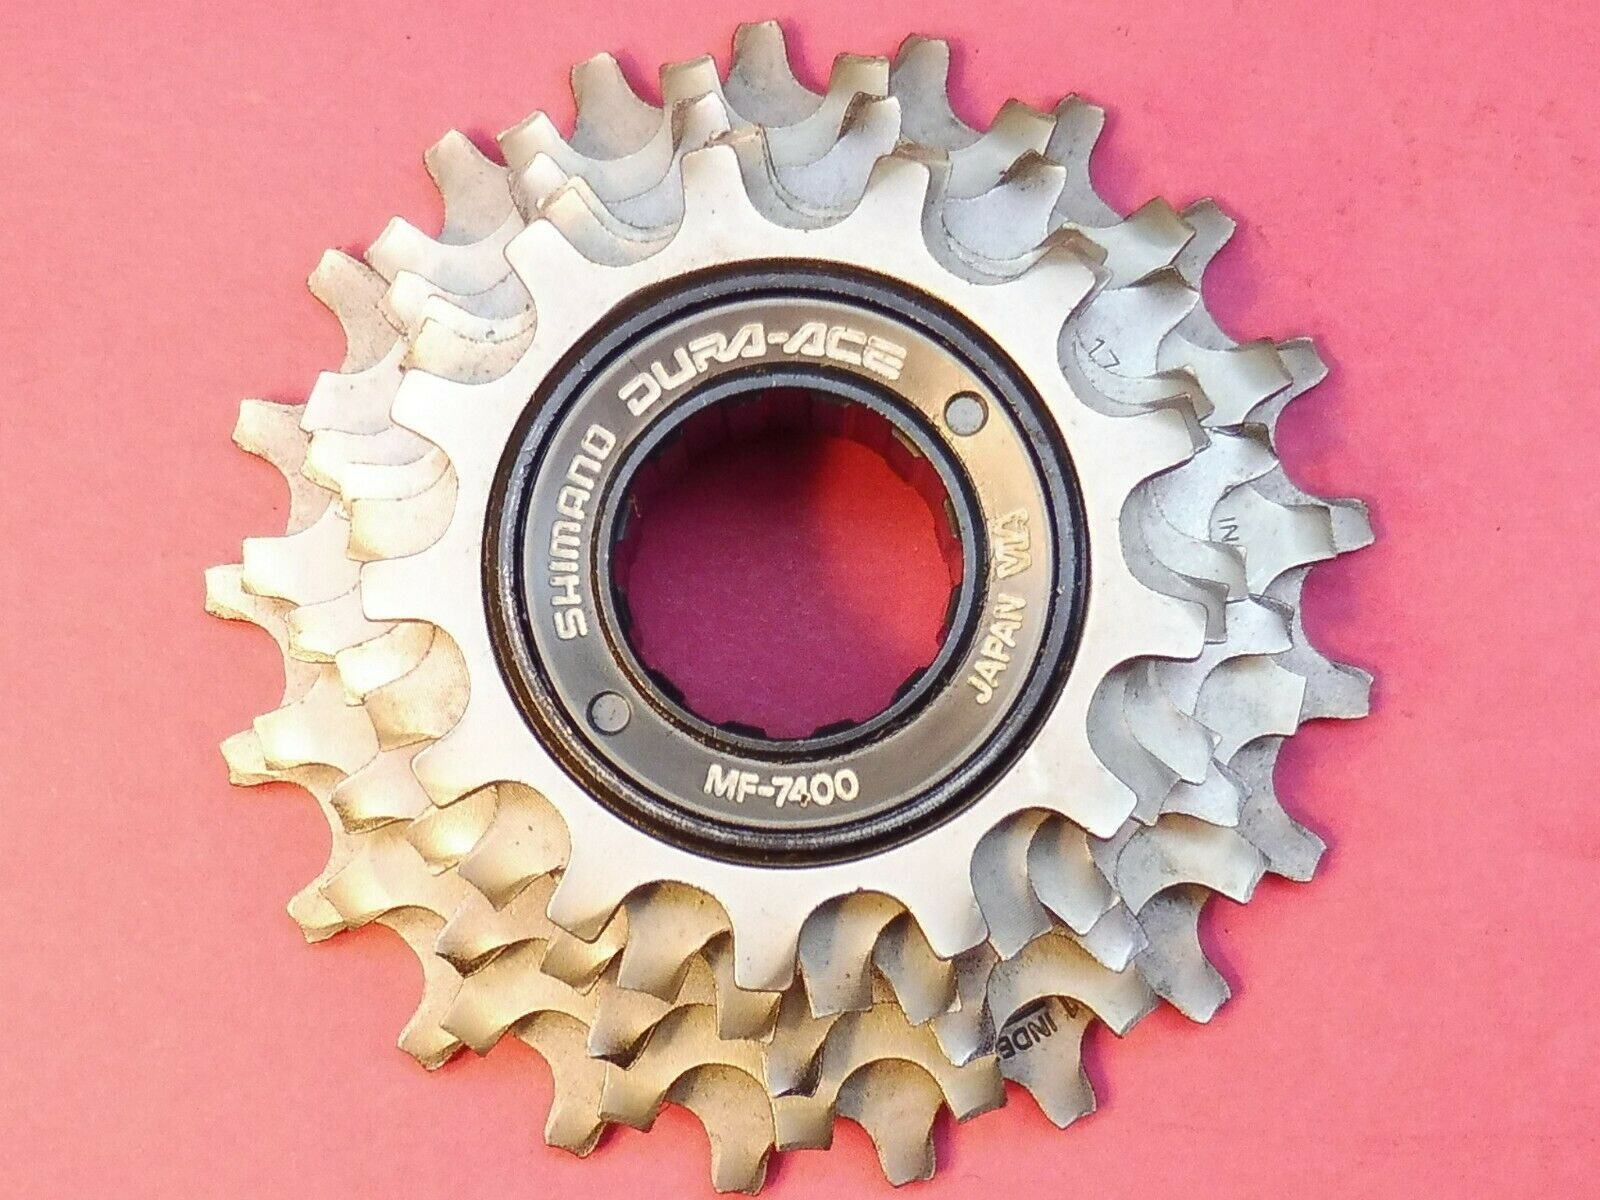 Shimano Dura Ace (MF-7400) 6-speed 13 21 bicycle freewheel - NOS L'eroica